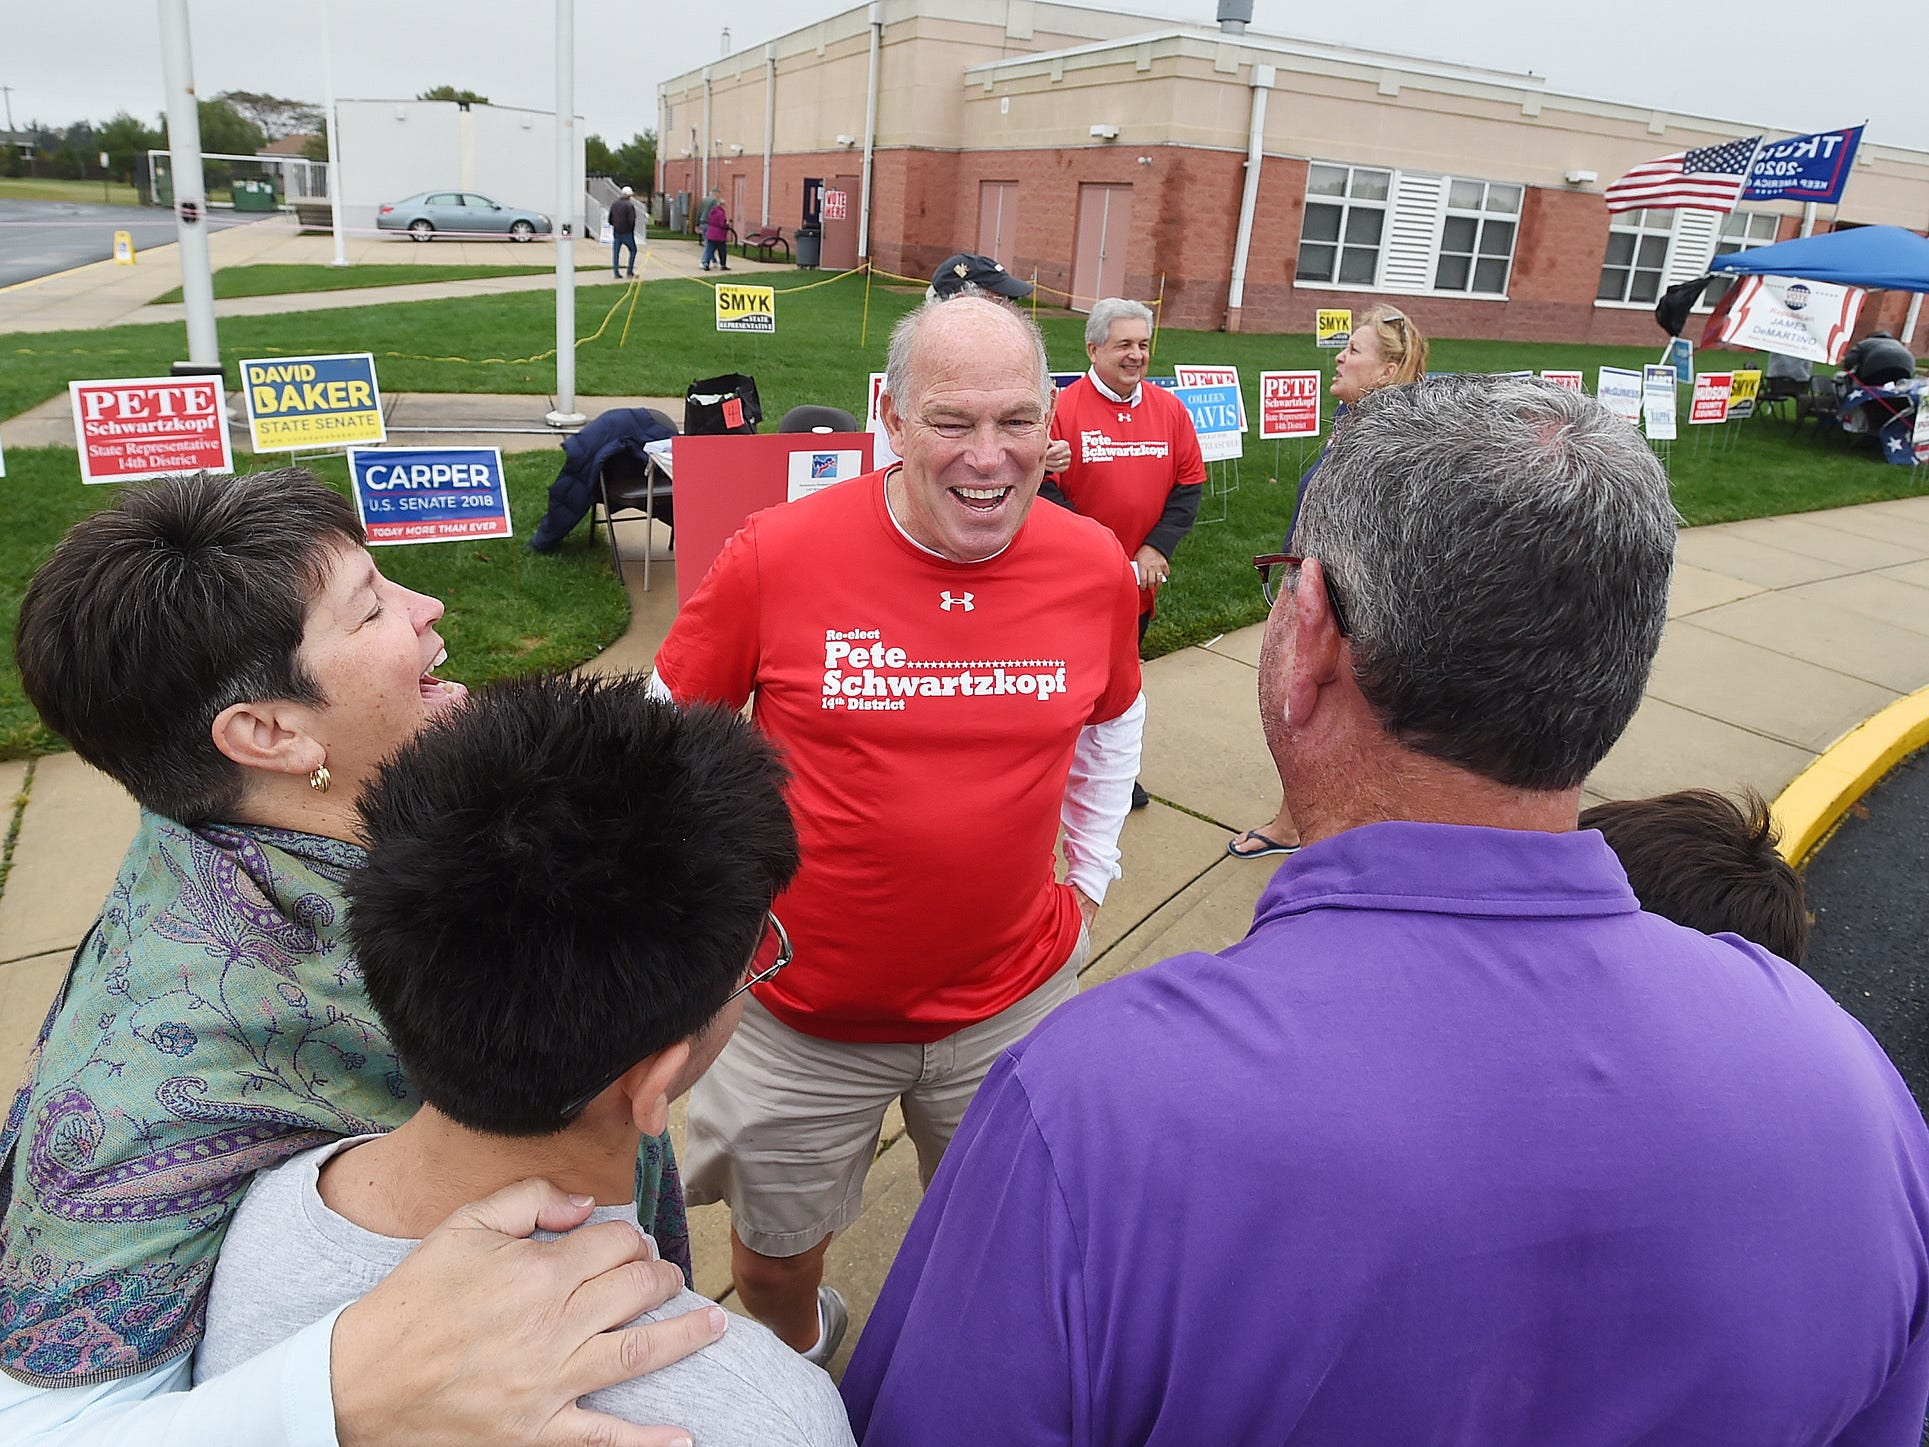 House Speaker Pete Schwartzkopf greets voters at Beacon Middle School near Angola as Voter turnout in eastern Sussex County has been steady at polling places in Rehoboth, Roxana, and Angola as candidates still greet supporters for their support.